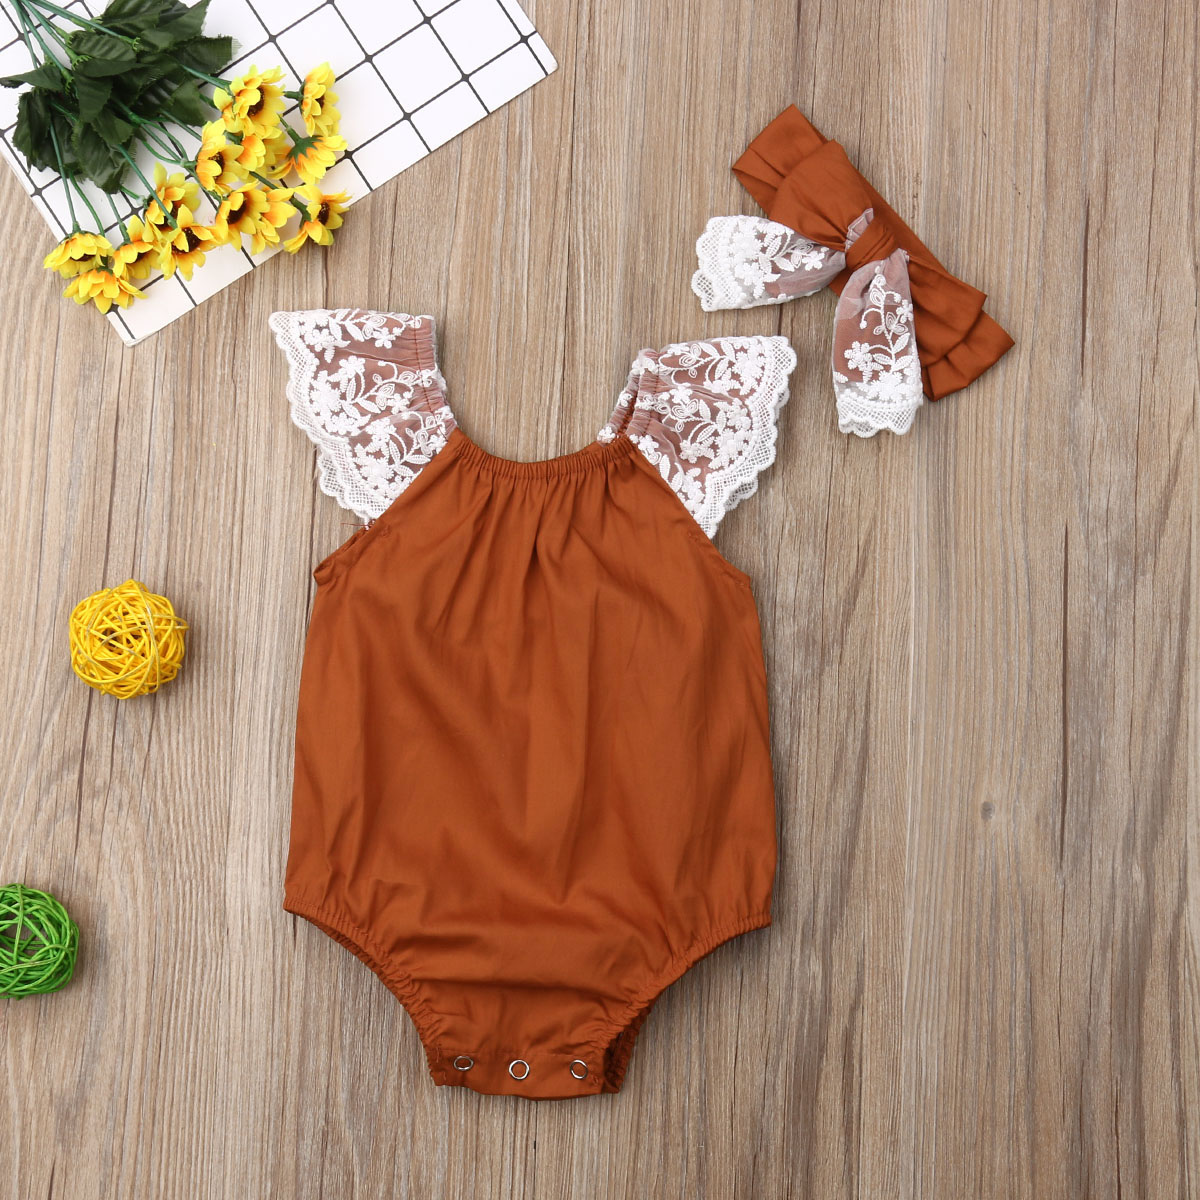 Pudcoco Newborn Baby Girl Clothes Solid Color Sleeveless Lace Ruffle Romper Jumpsuit Headband 2Pcs Outfits Cotton Clothes